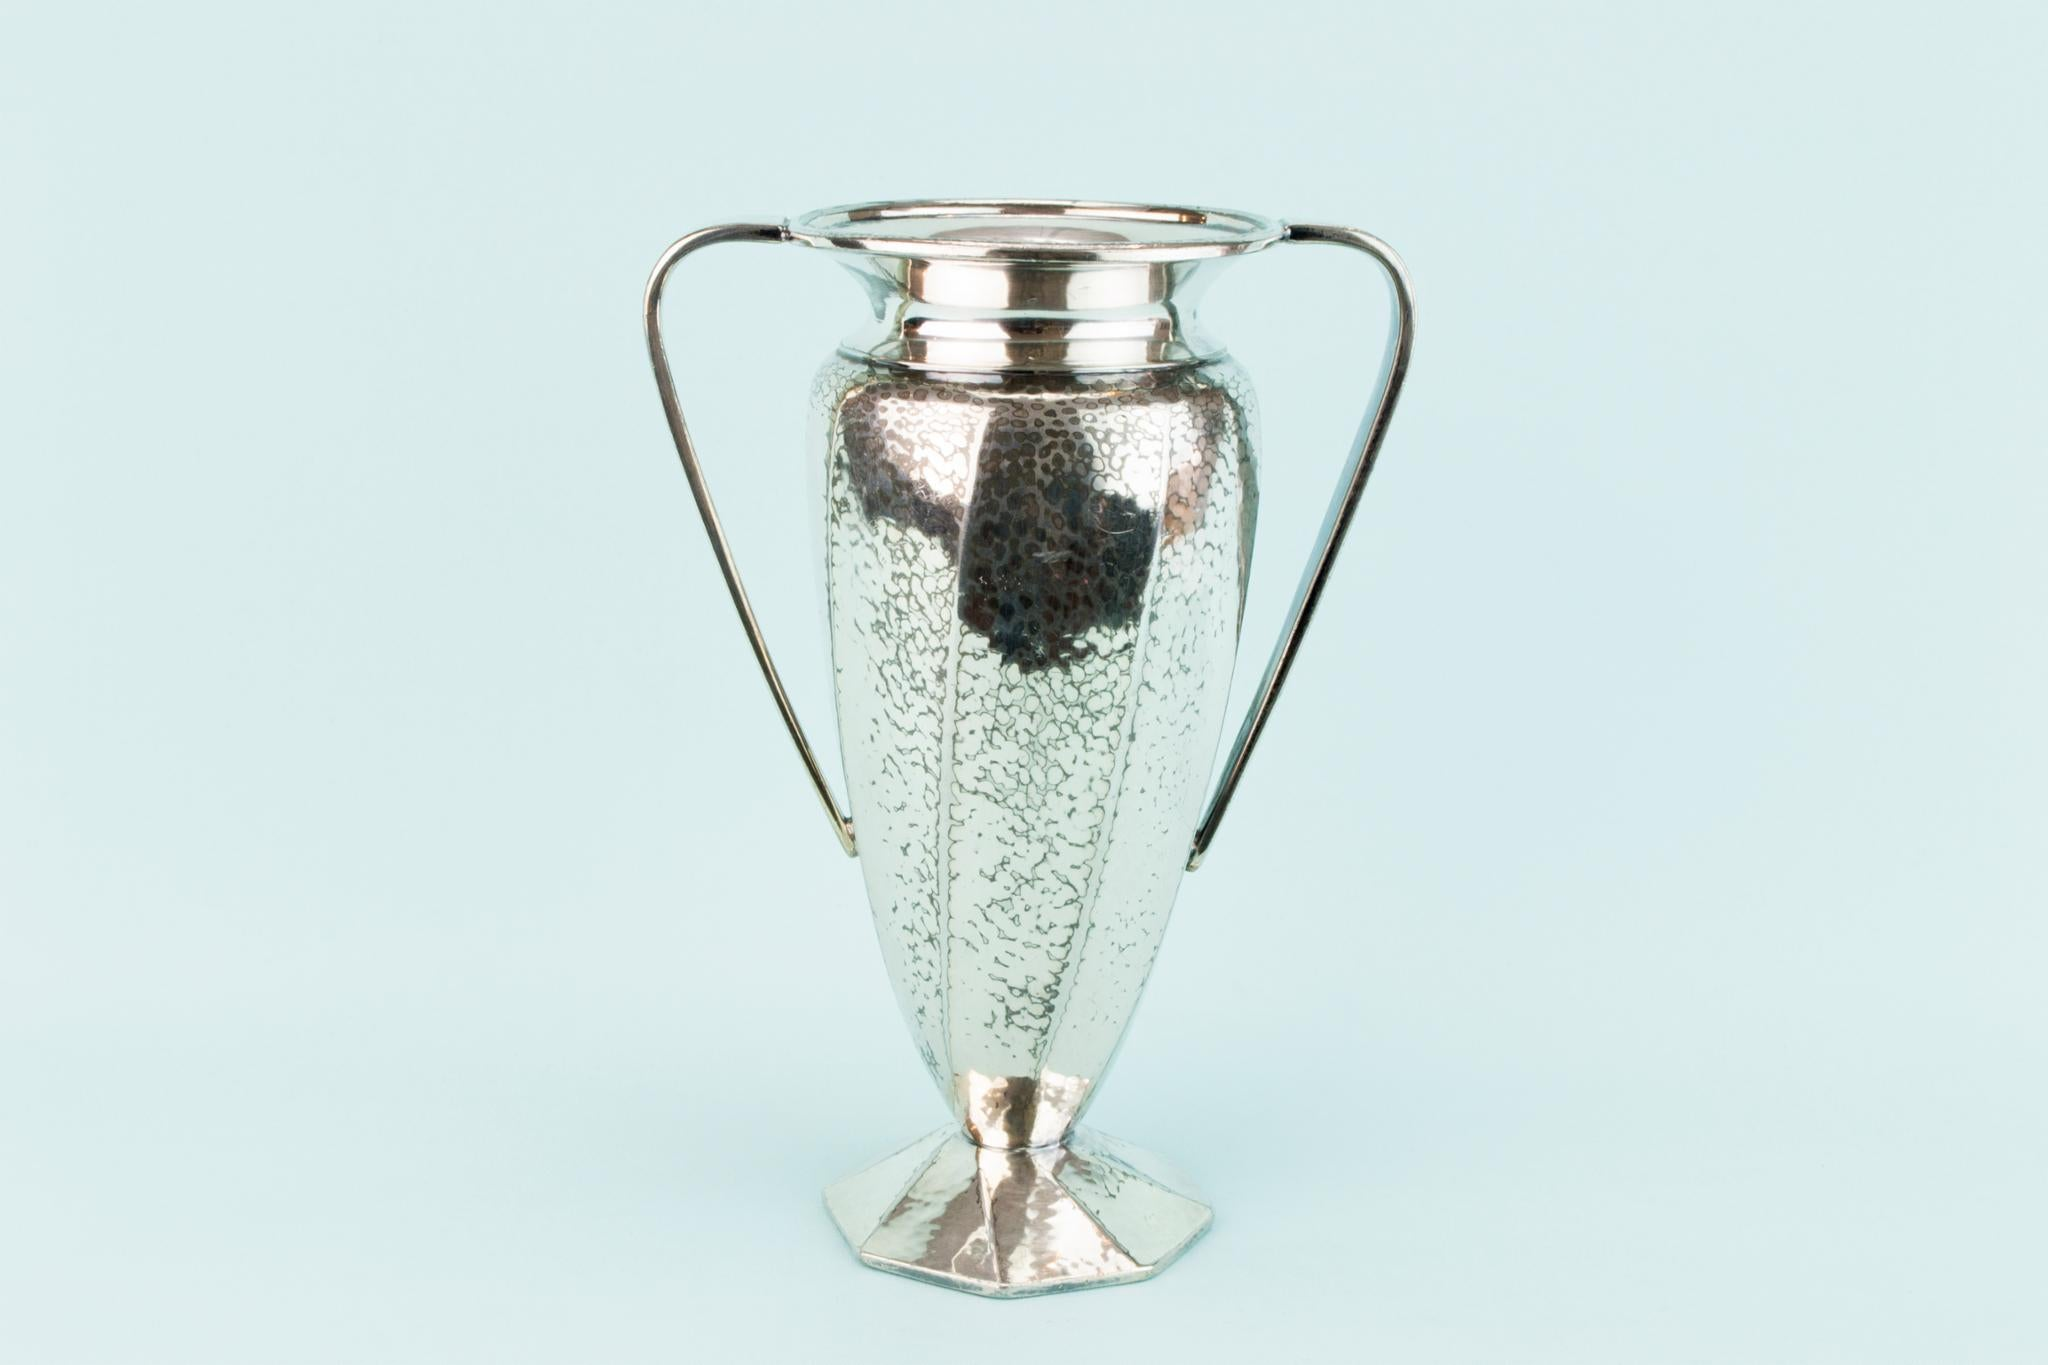 Edwardian Pewter Amphora Vase, English Early 1900s